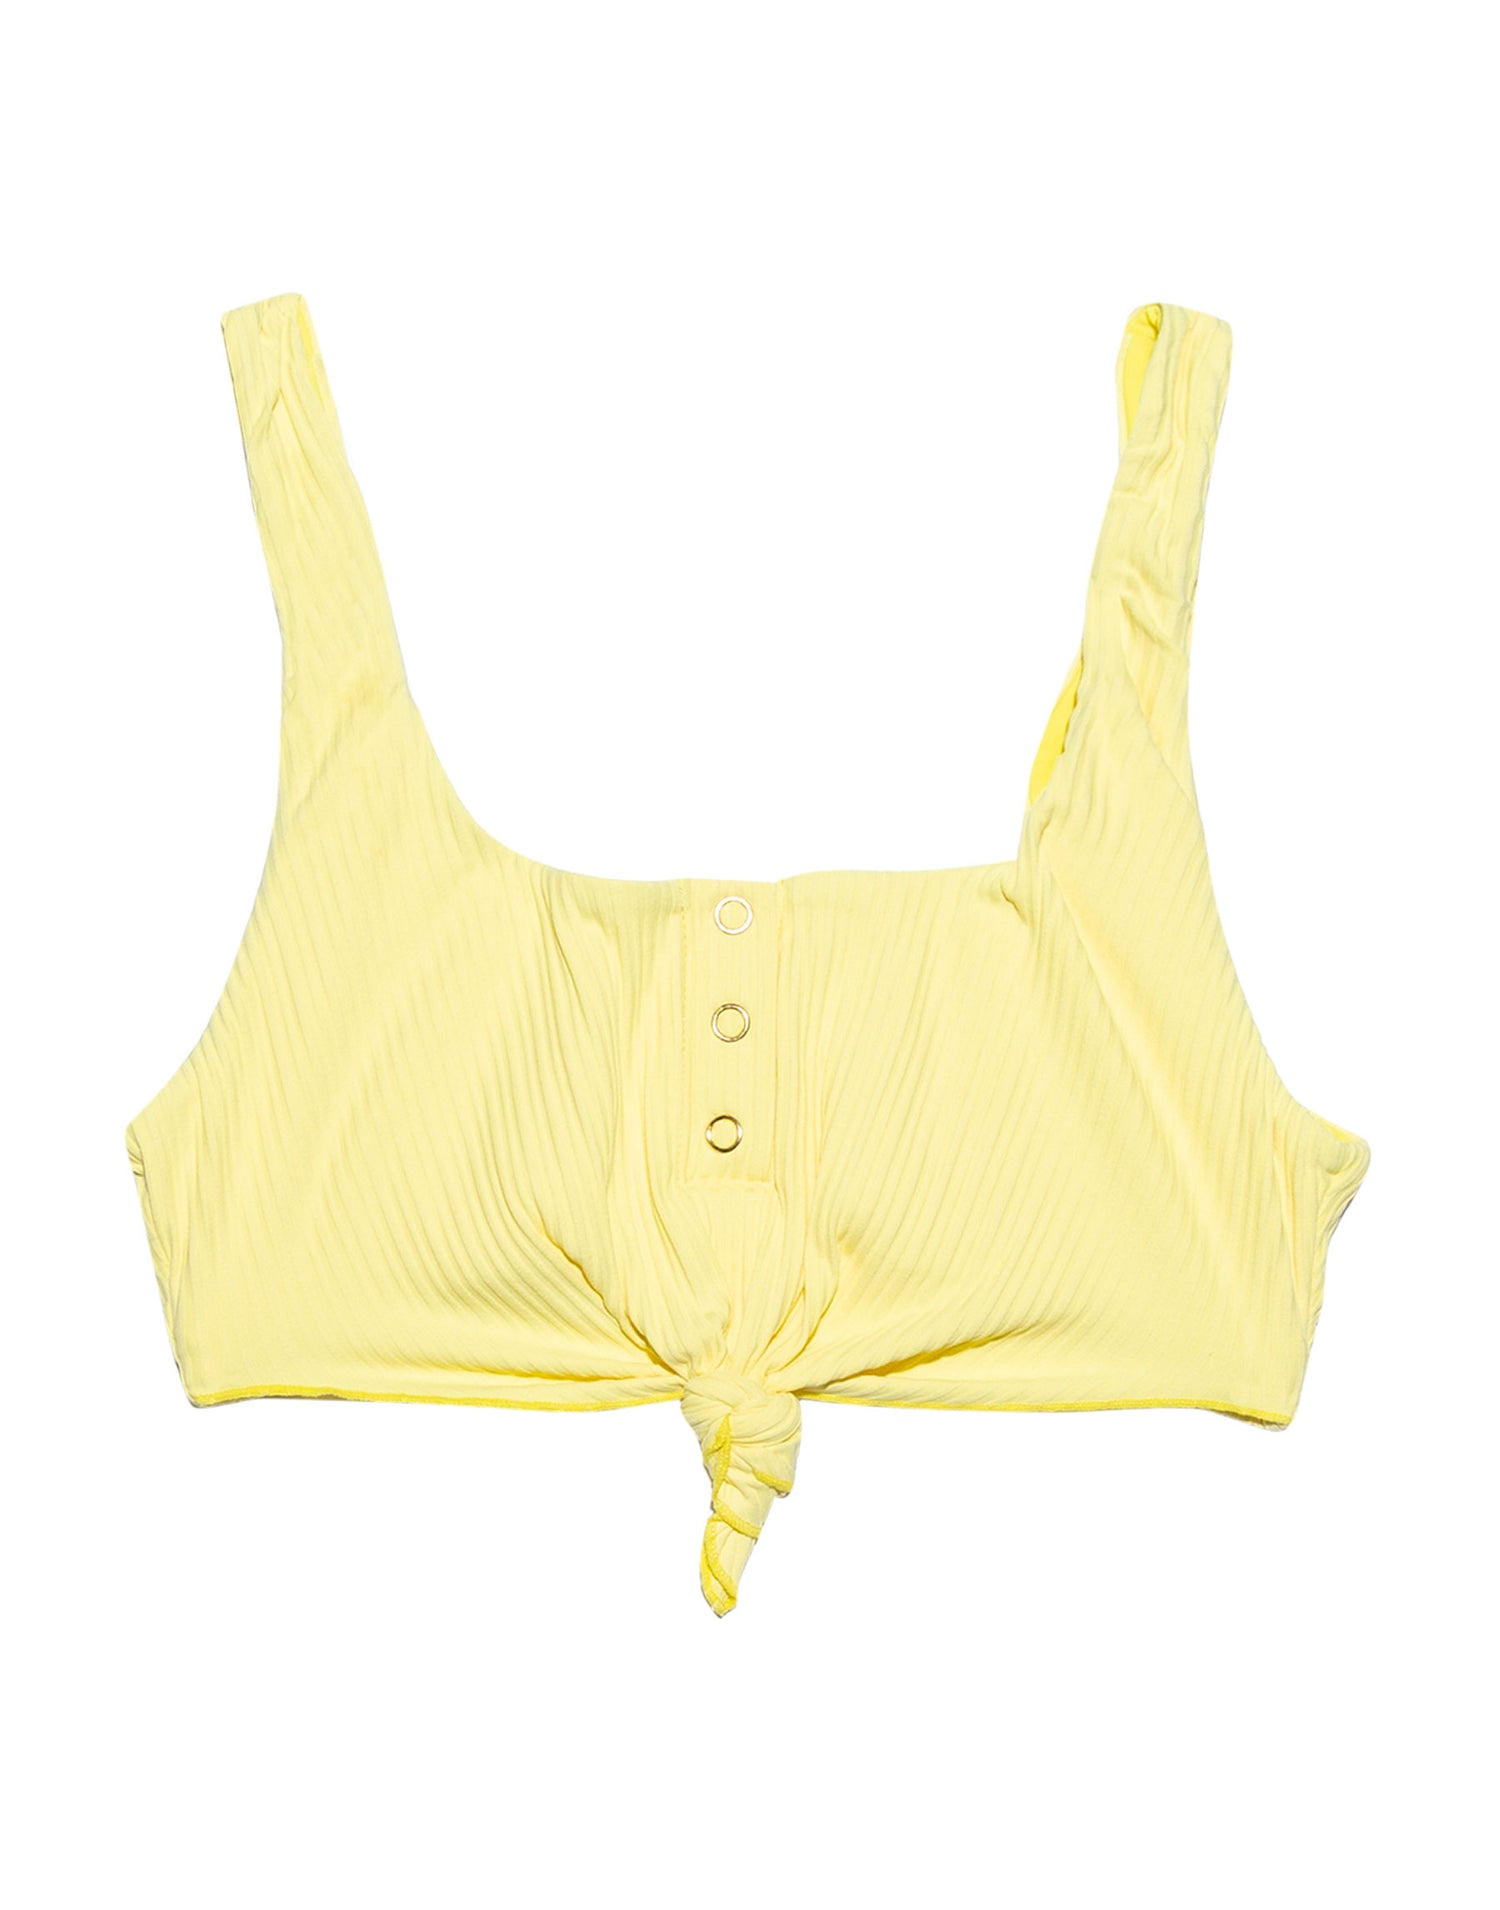 Sage Knot Bikini Top in Lemon Yellow Rib - product view